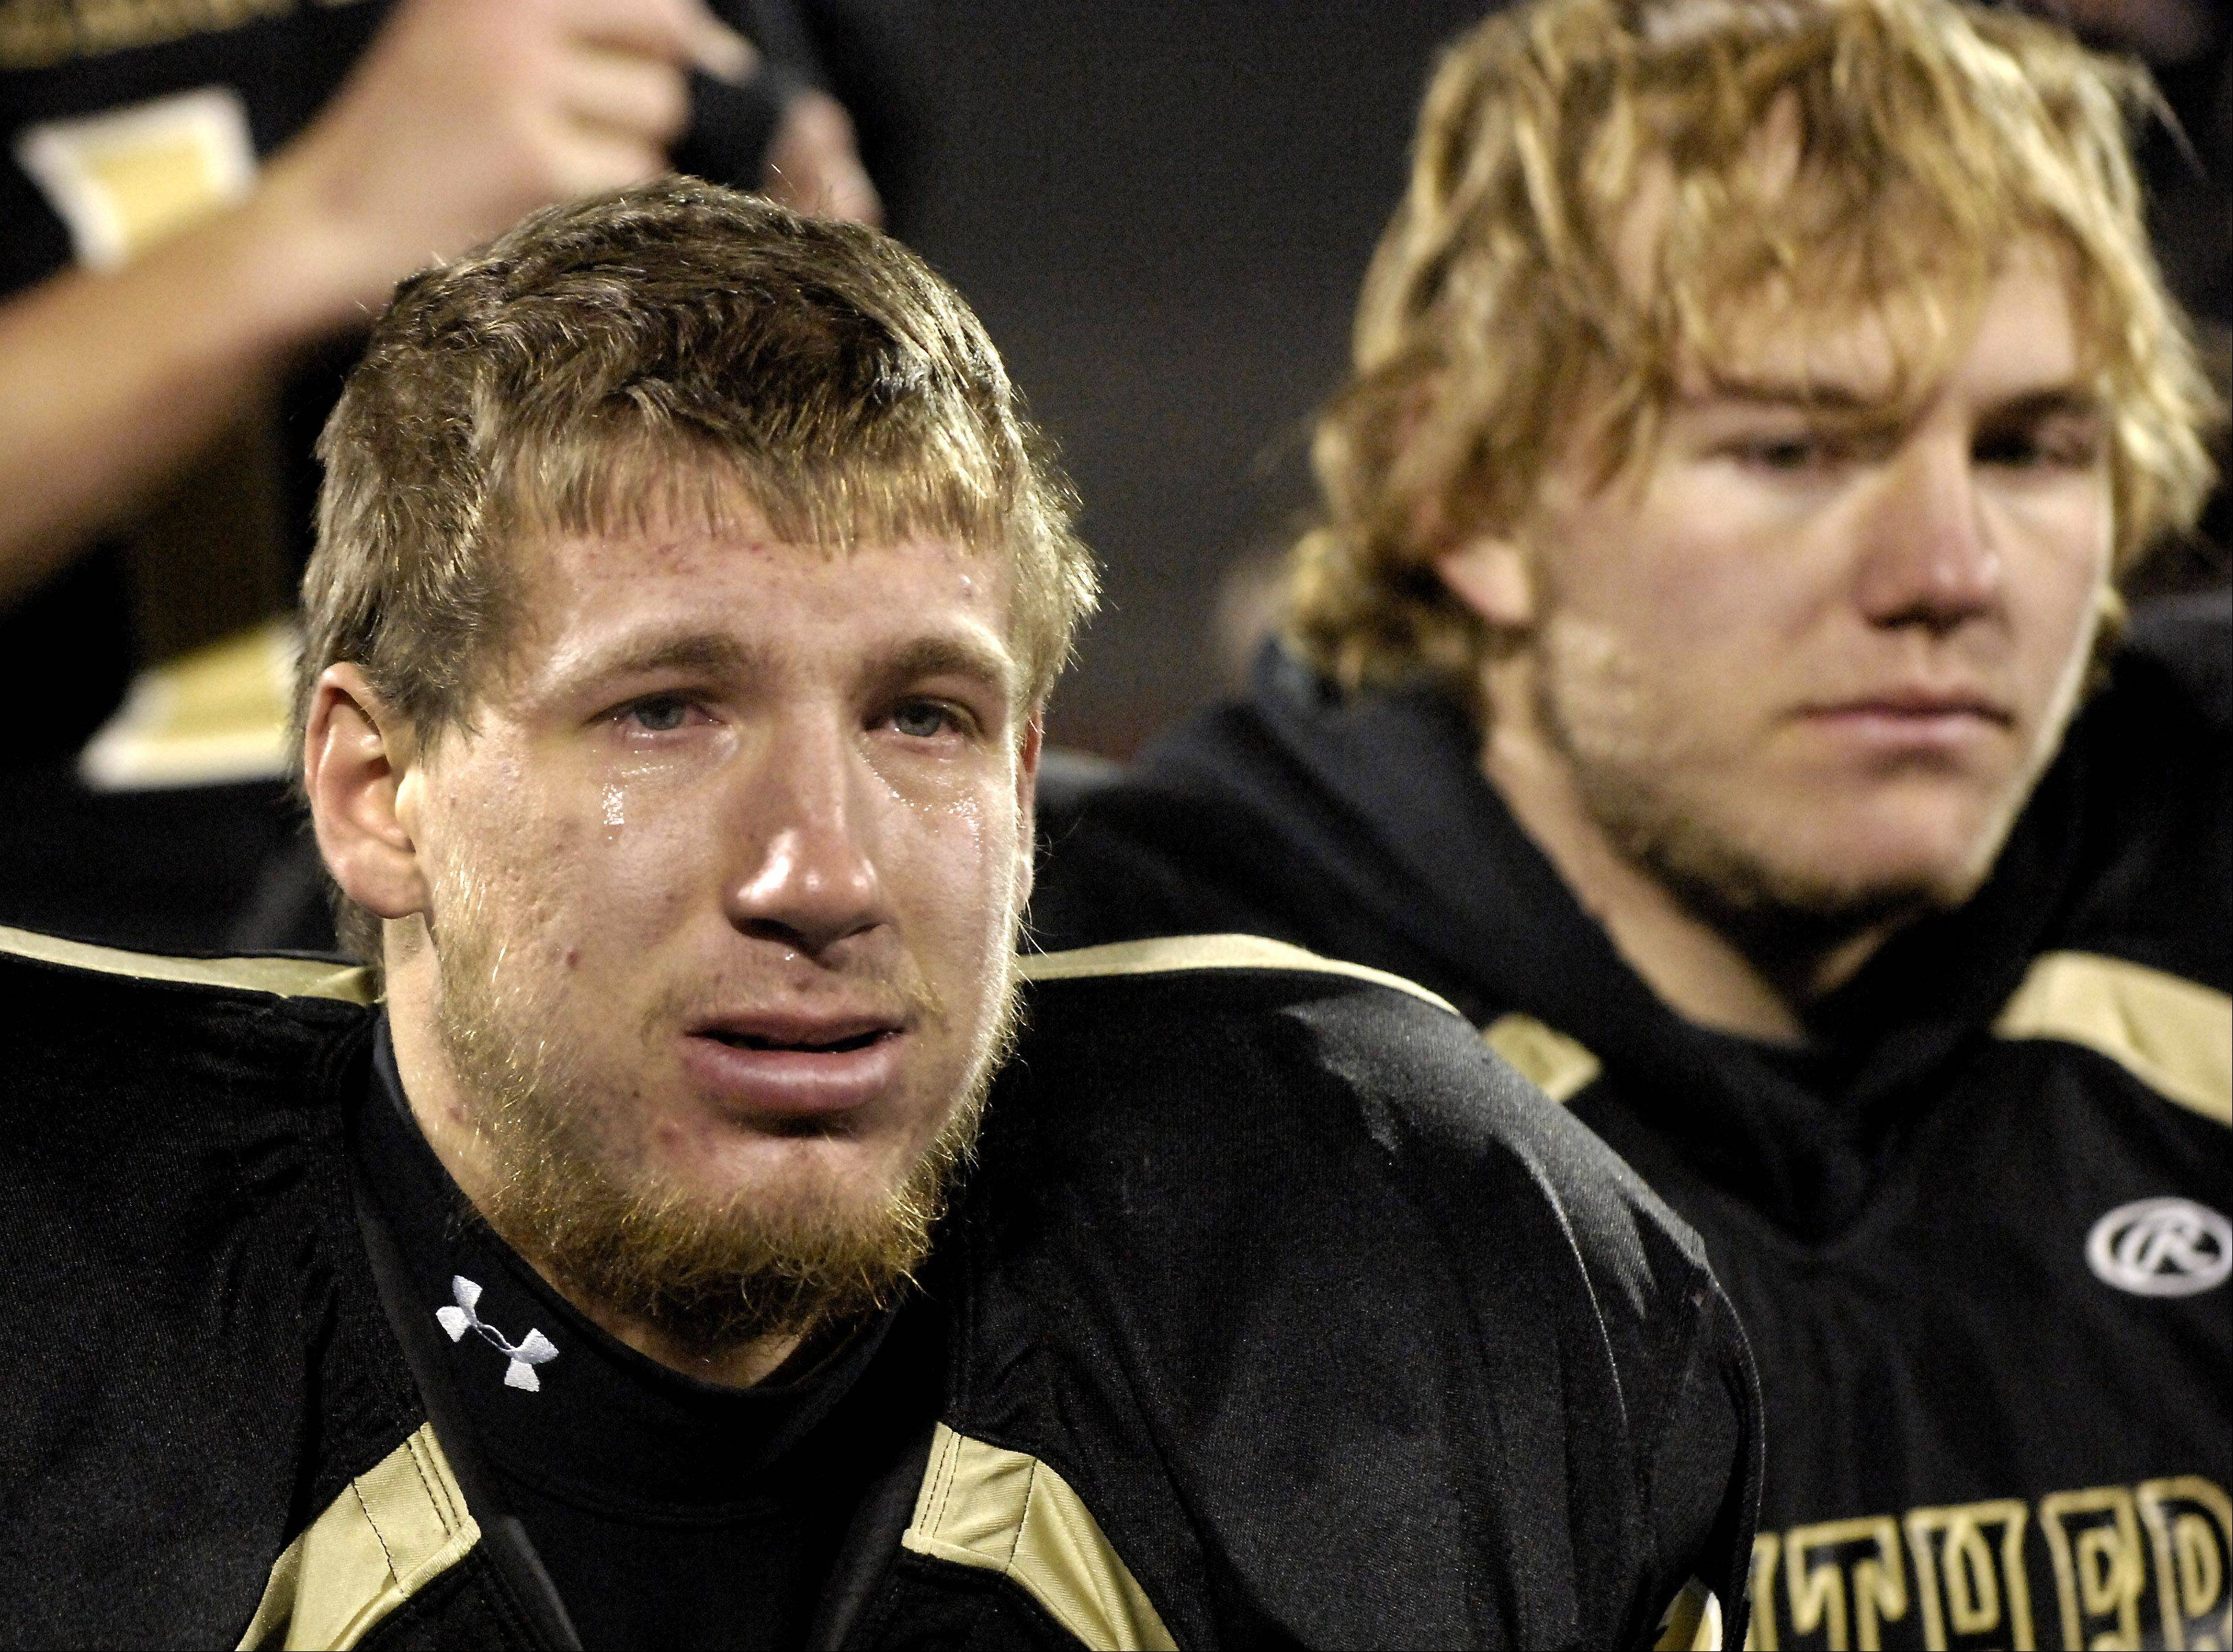 Tears stream down the cheeks of Glenbard North's Jeff Lapage following the Panthers loss to Mt. Carmel Saturday's Class 8A state title game at Memorial Stadium in Champaign.